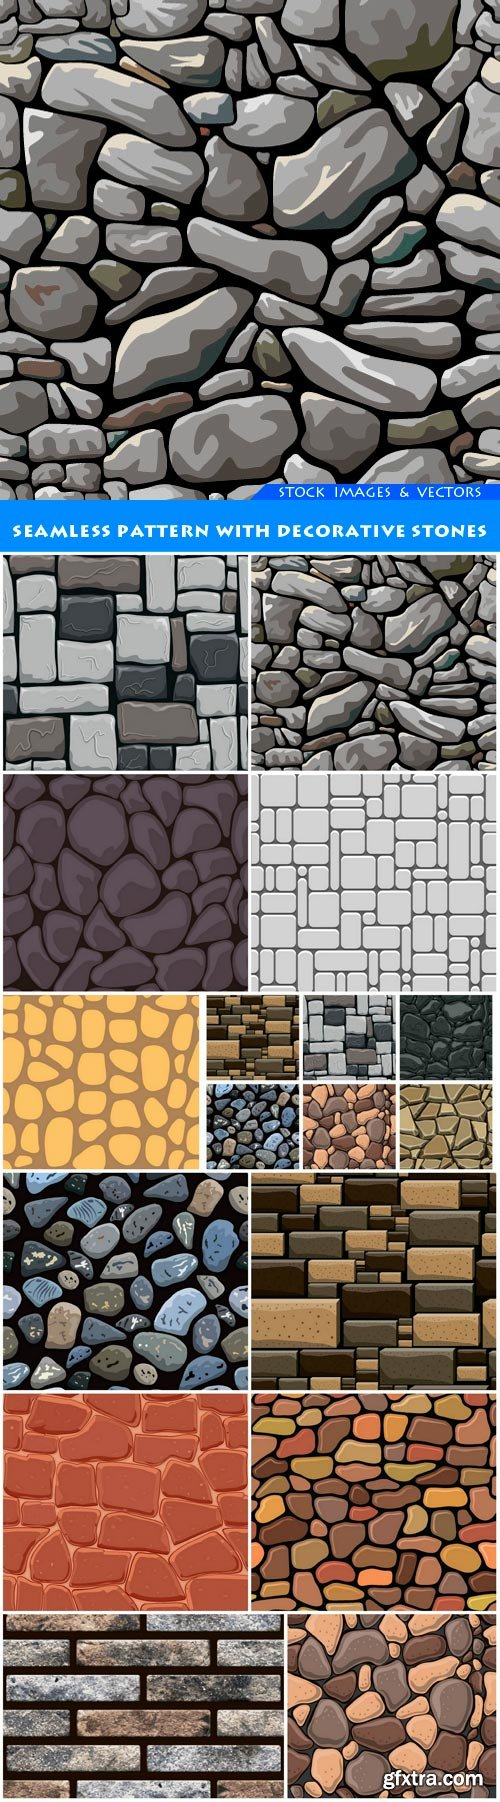 Seamless pattern with decorative stones 12X EPS